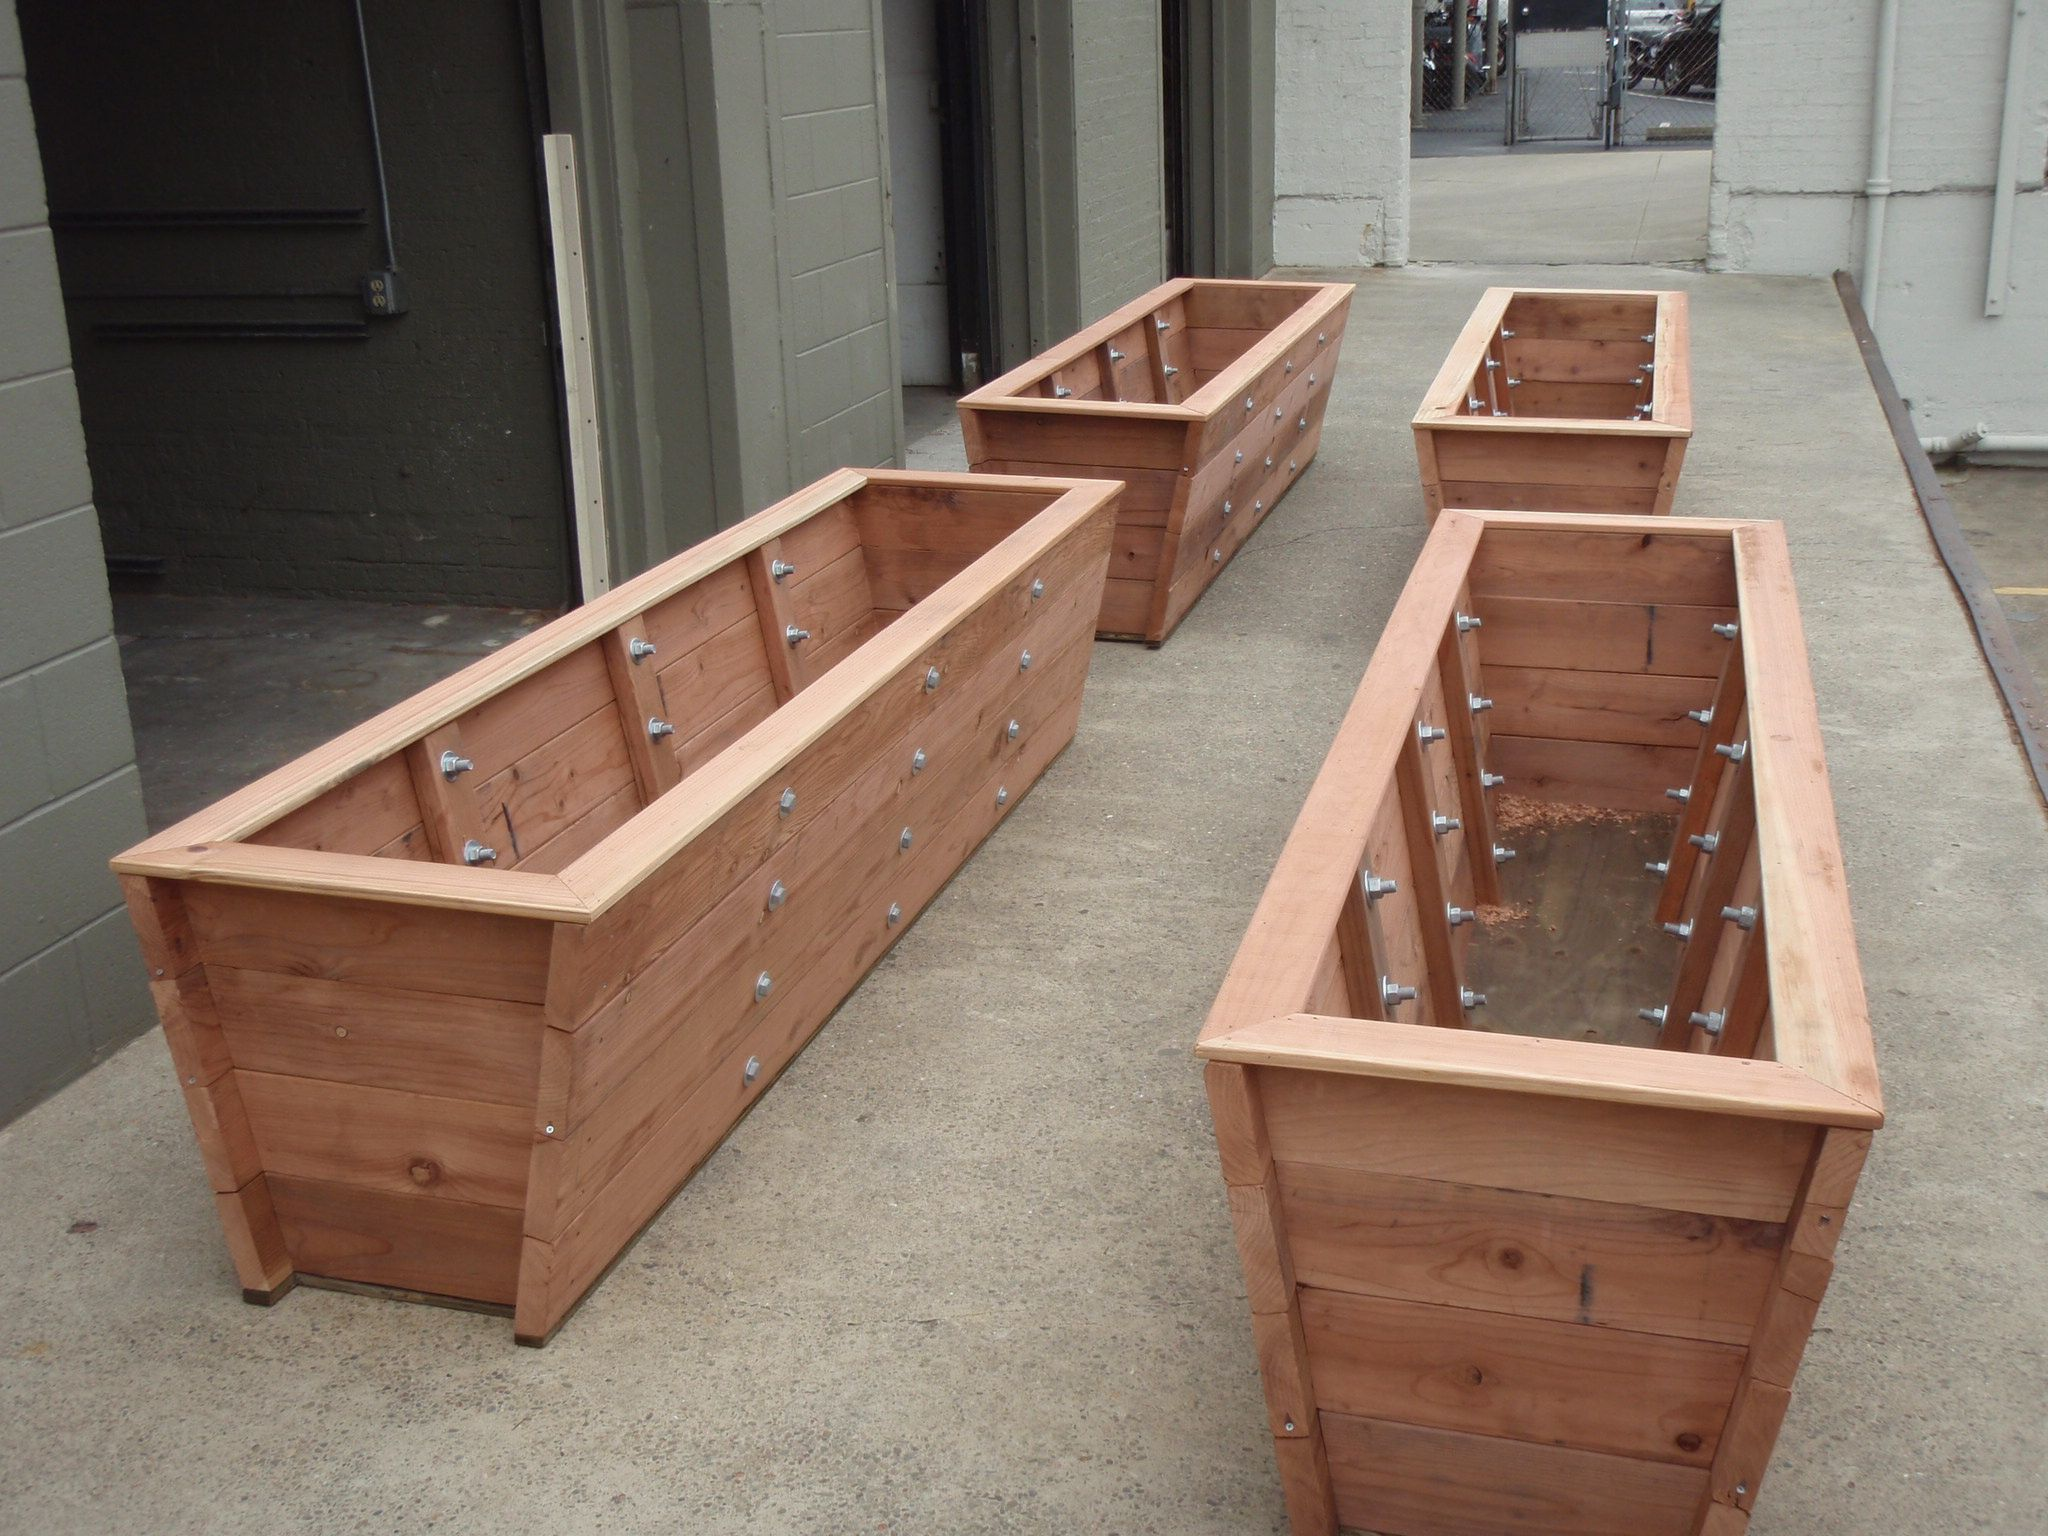 Large redwood planter boxes made for tall bamboo. Trick